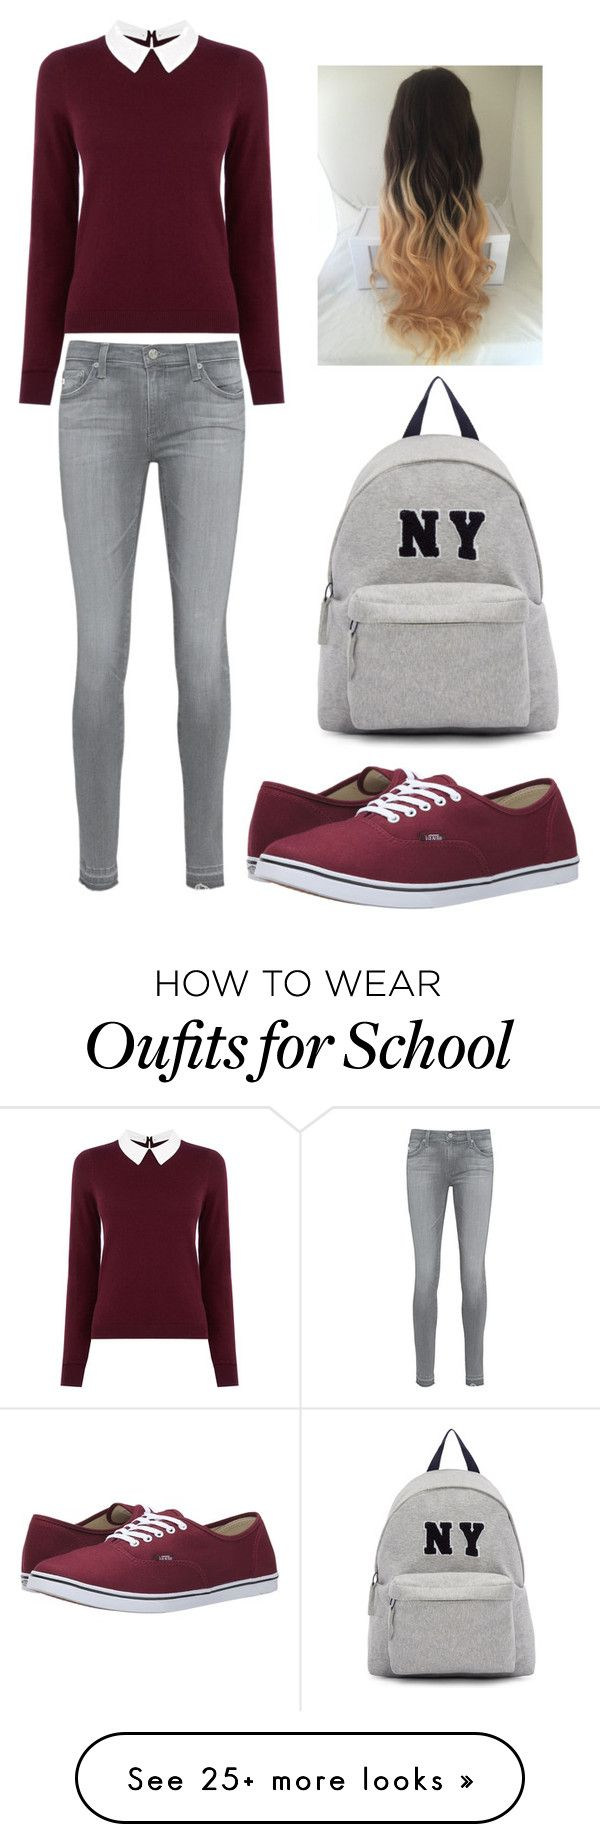 """Go to school..."" by kikabijelic on Polyvore featuring Oasis, AG Adriano Goldschmied, Vans and Joshua's"